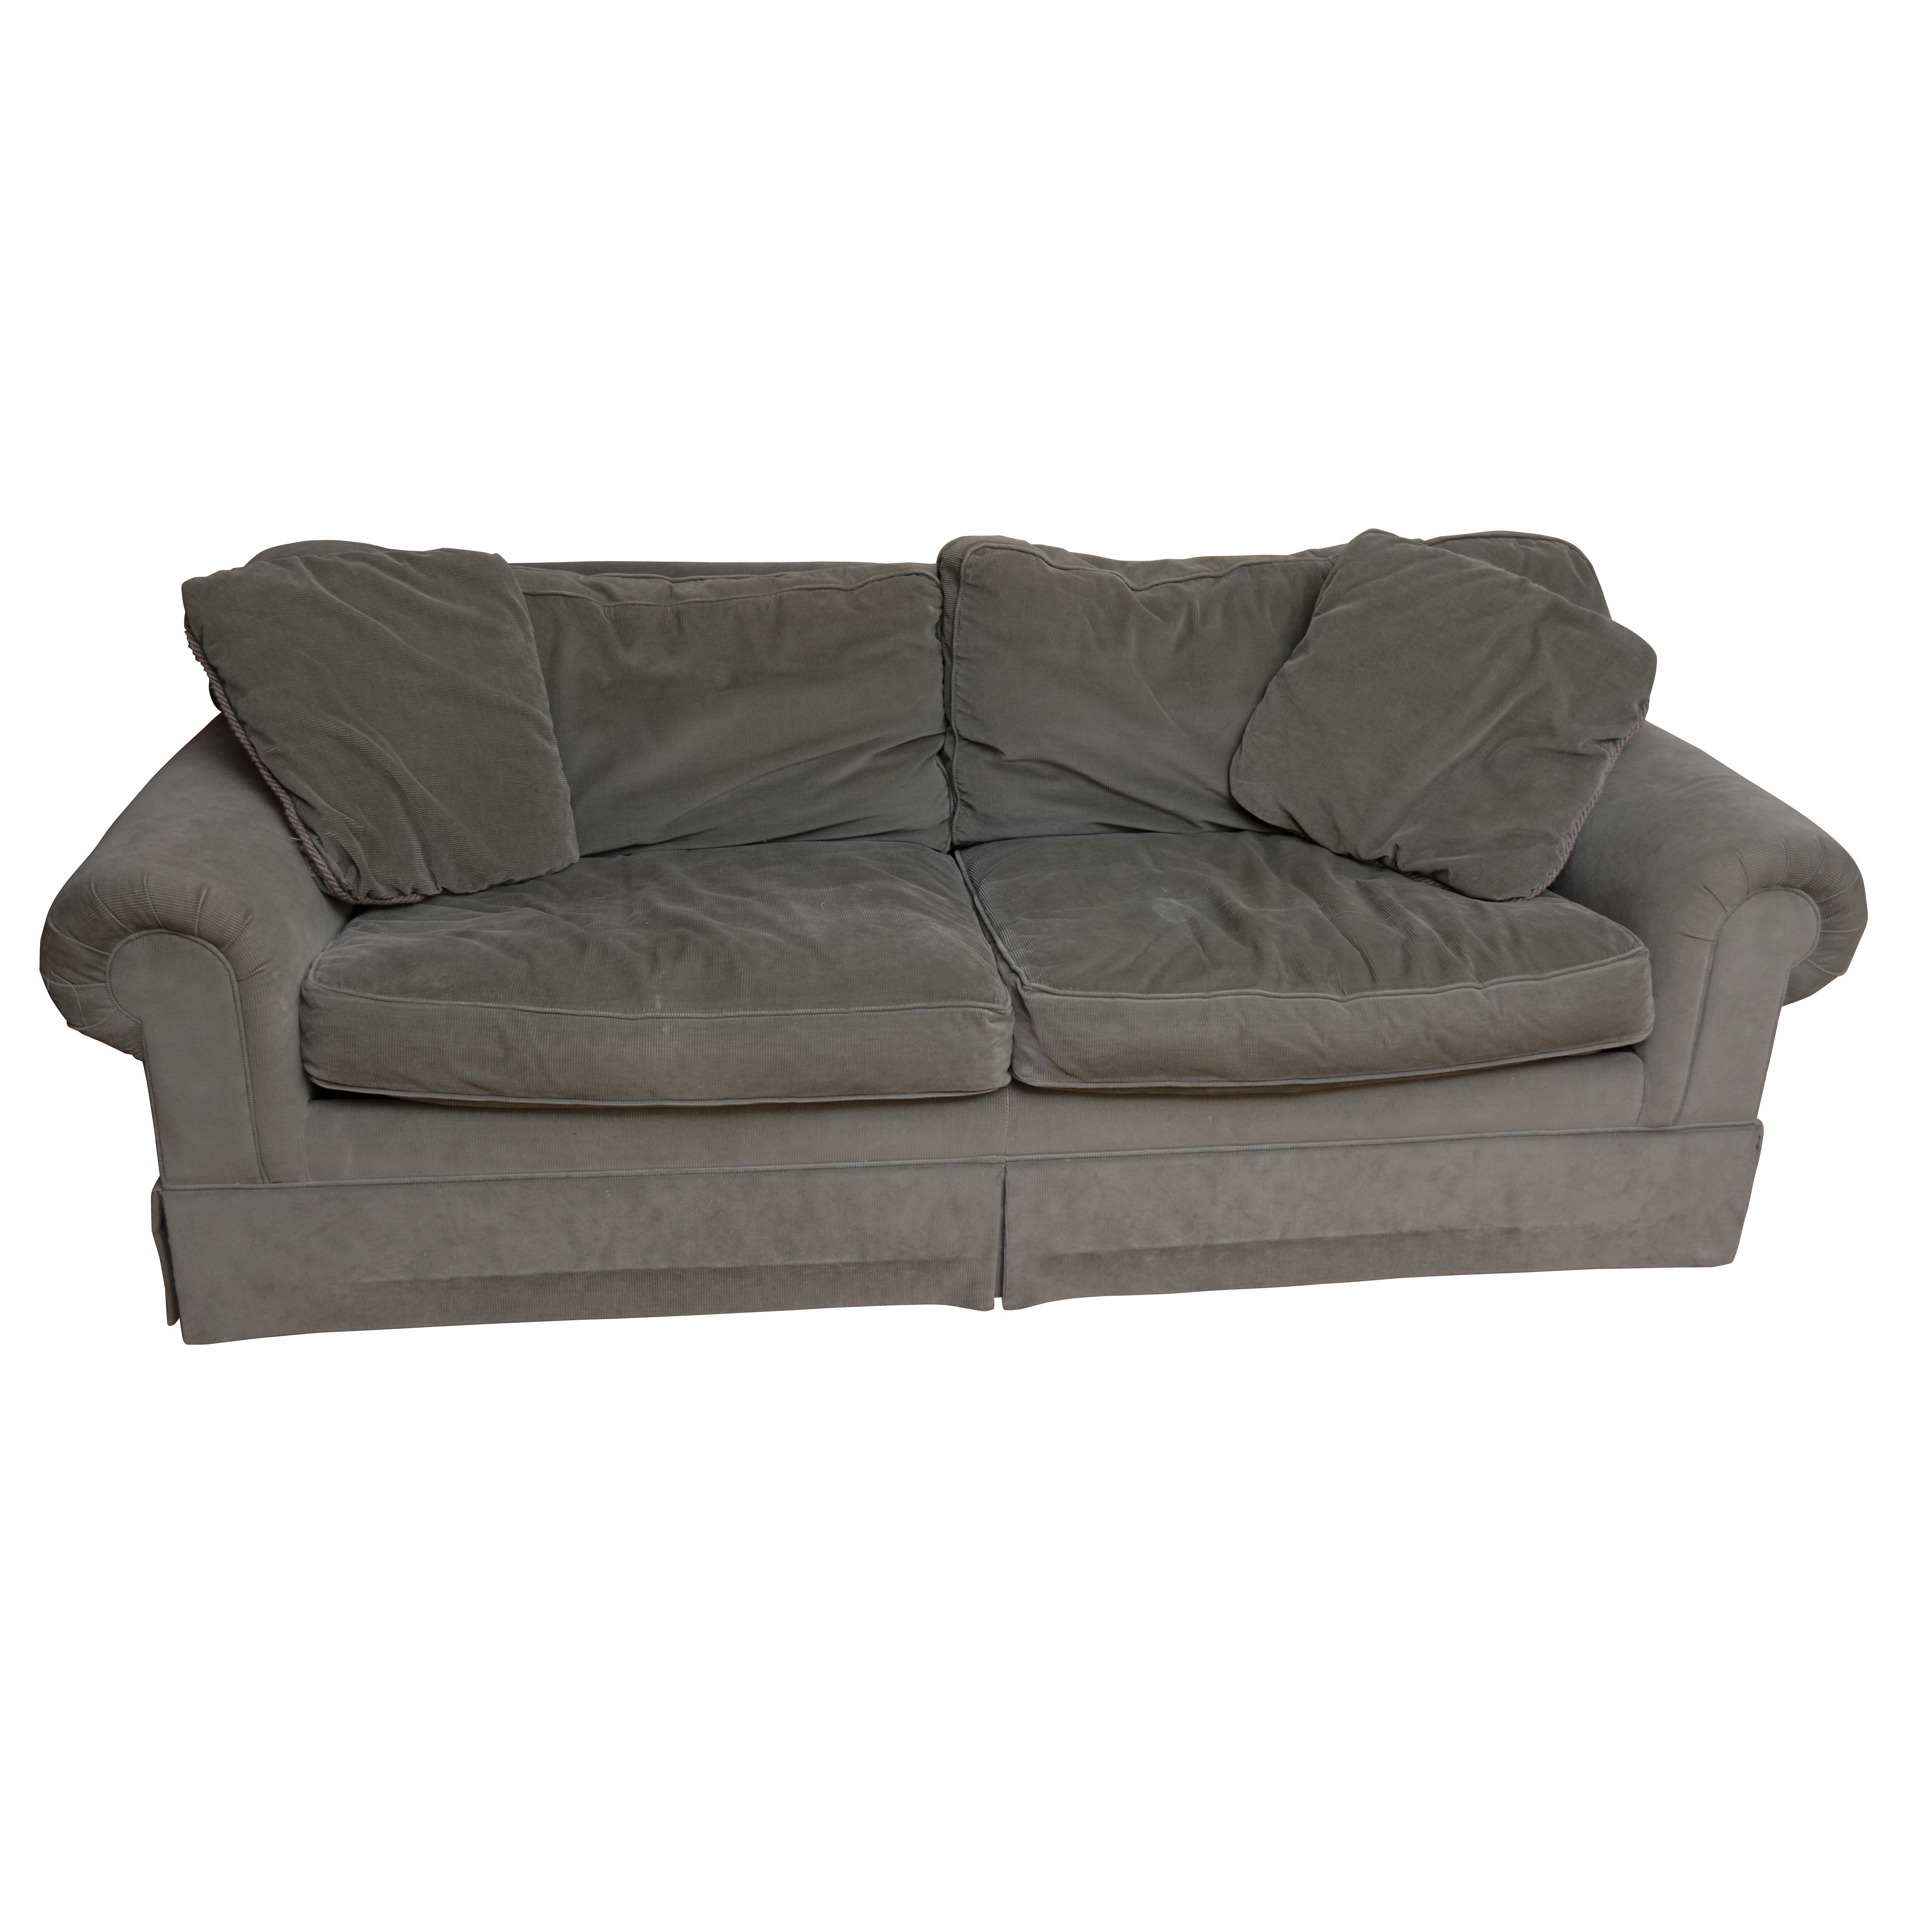 Upholstered Sofa by Alexandria Classic Furniture for Bloomingdale's